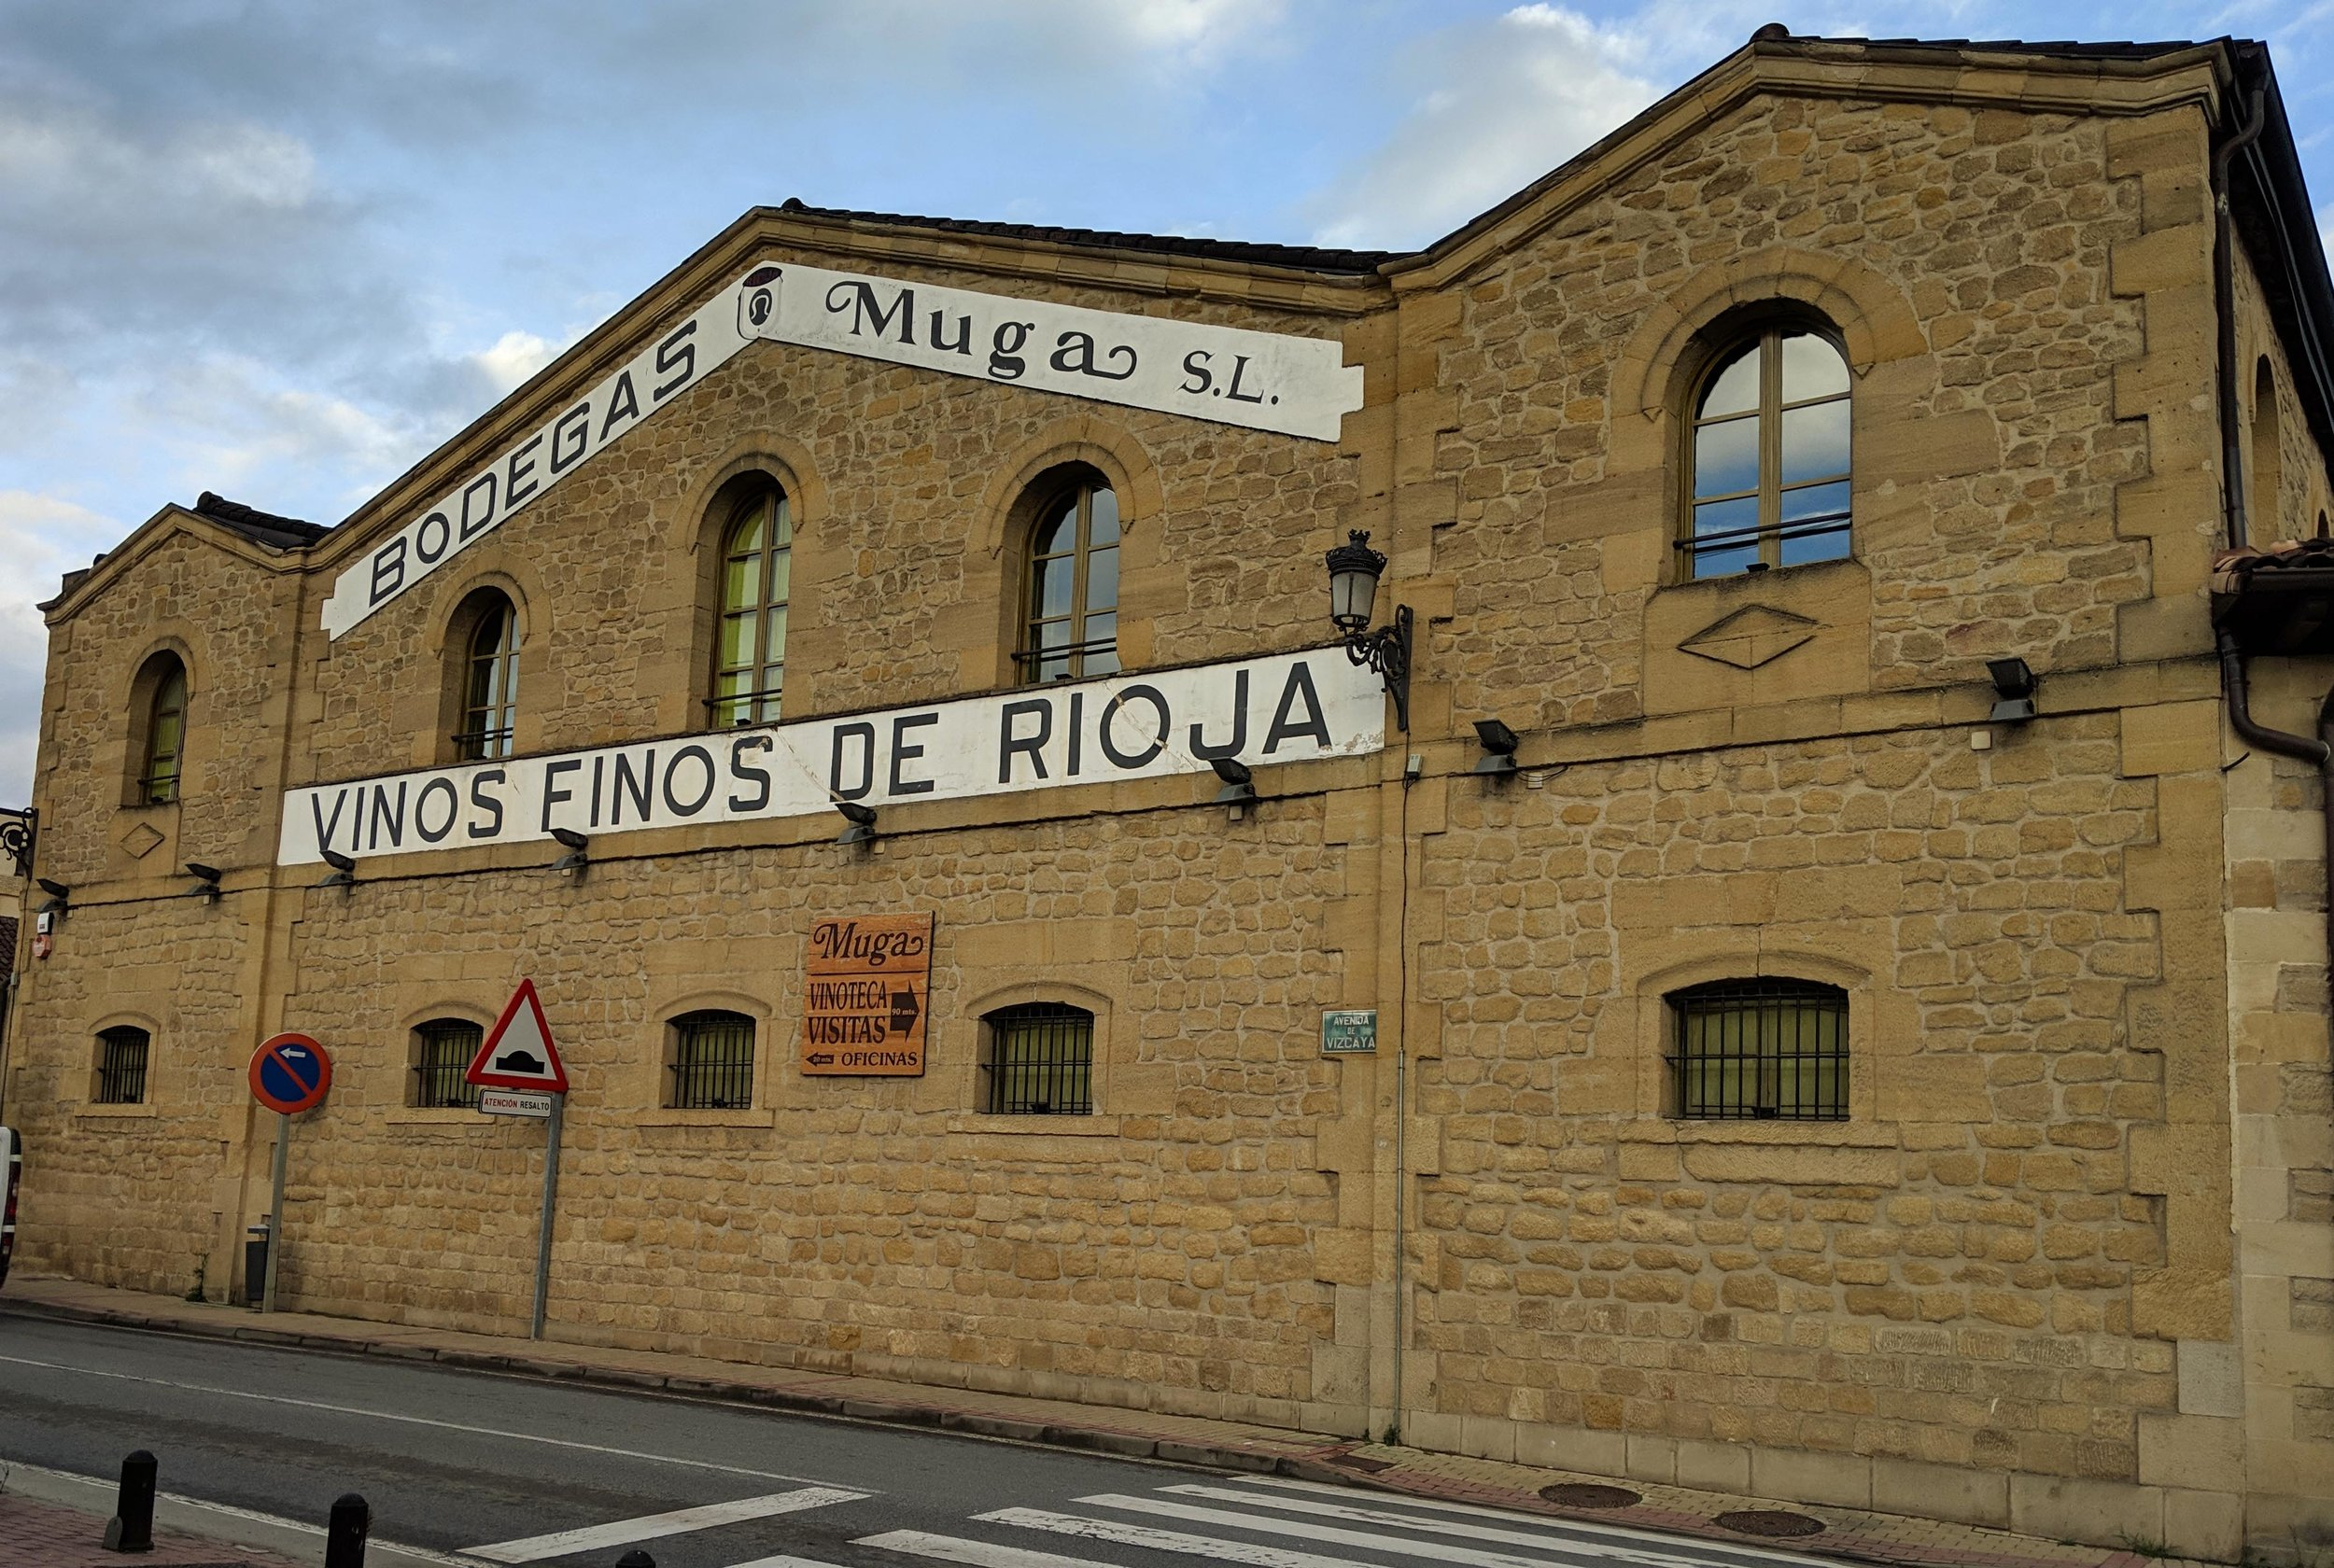 First stop - Haro in the Rioja region